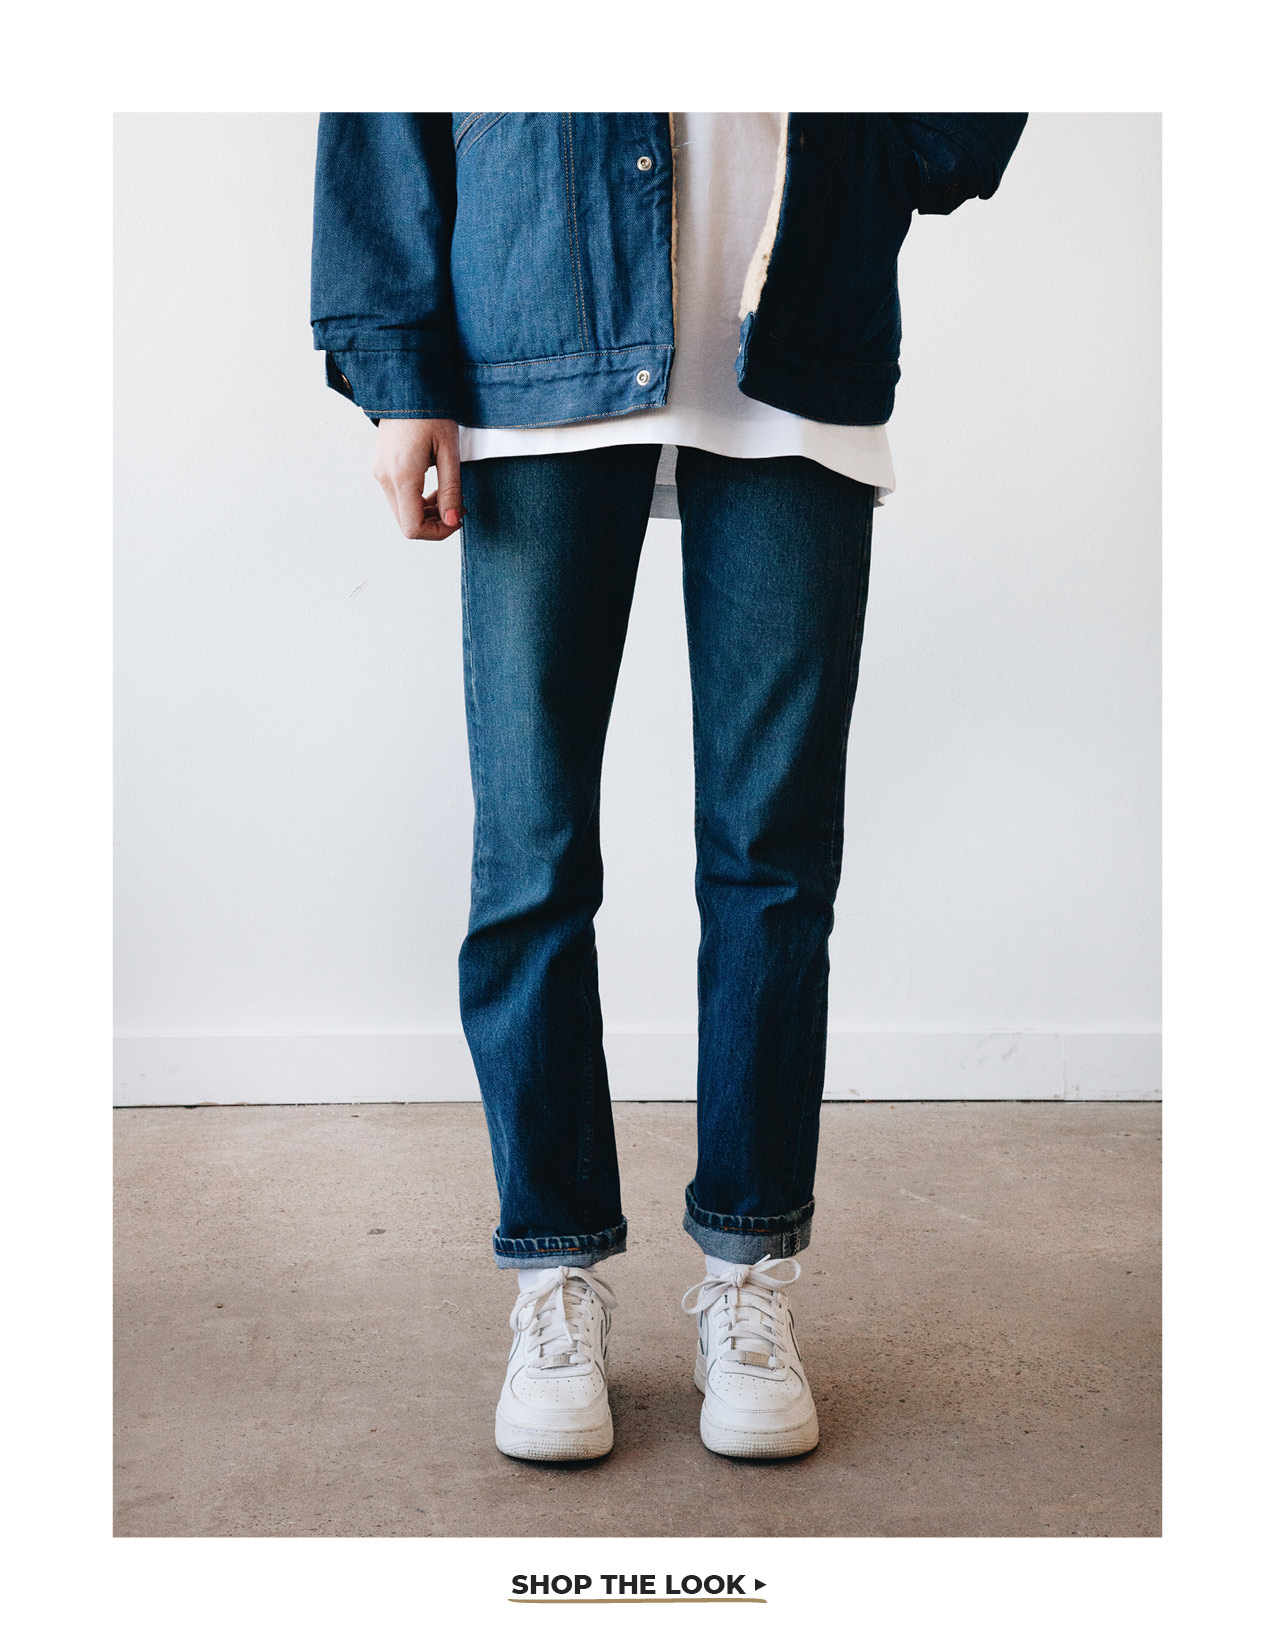 orslow denim jacket, comme des garcons shirt turkish tee and levi's vintage clothing 1954 501 jeans on body